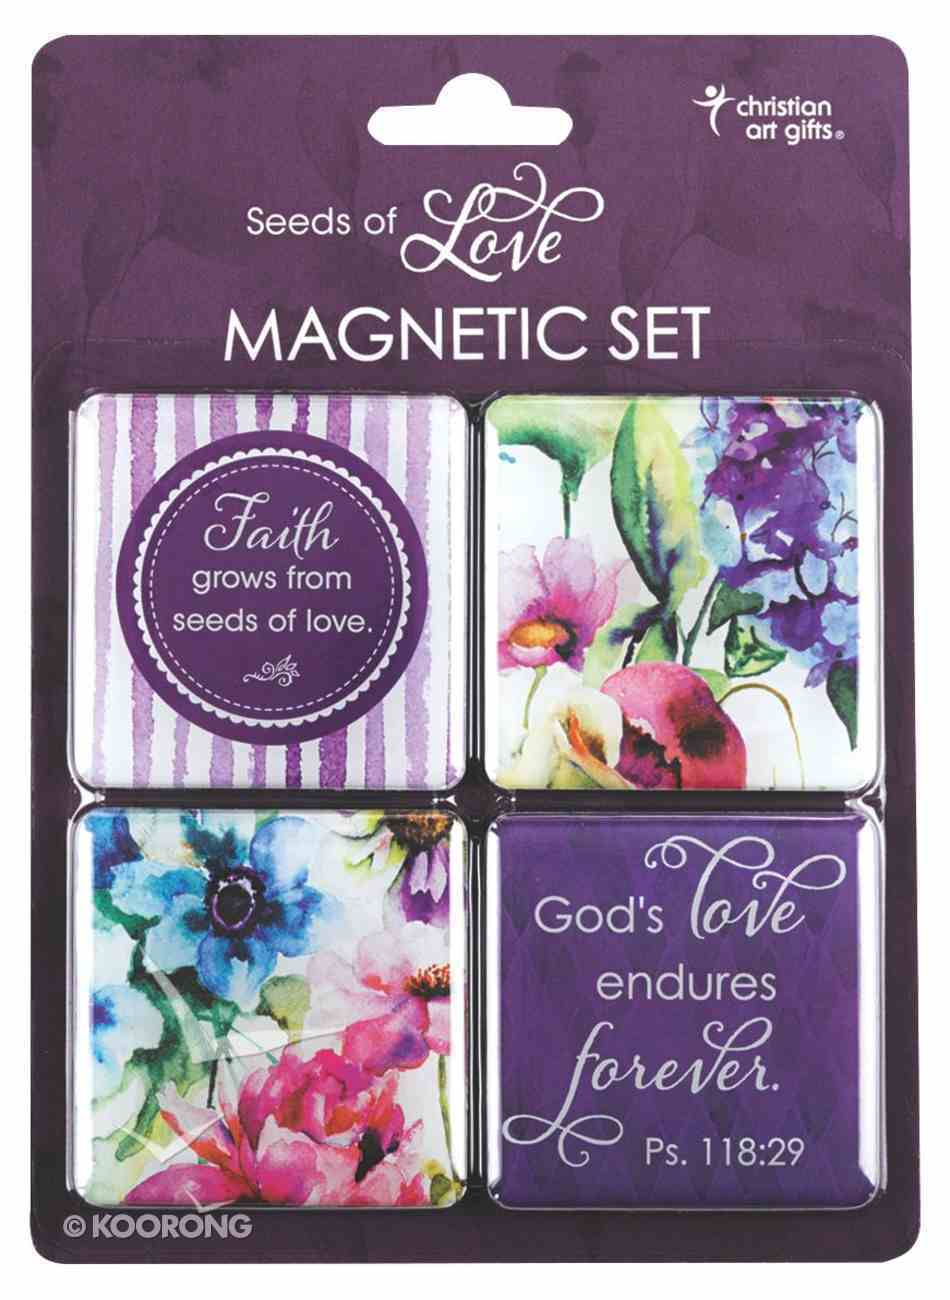 Magnetic Set of 4 Magnets: Seeds of Love (Purple/flowers) Novelty